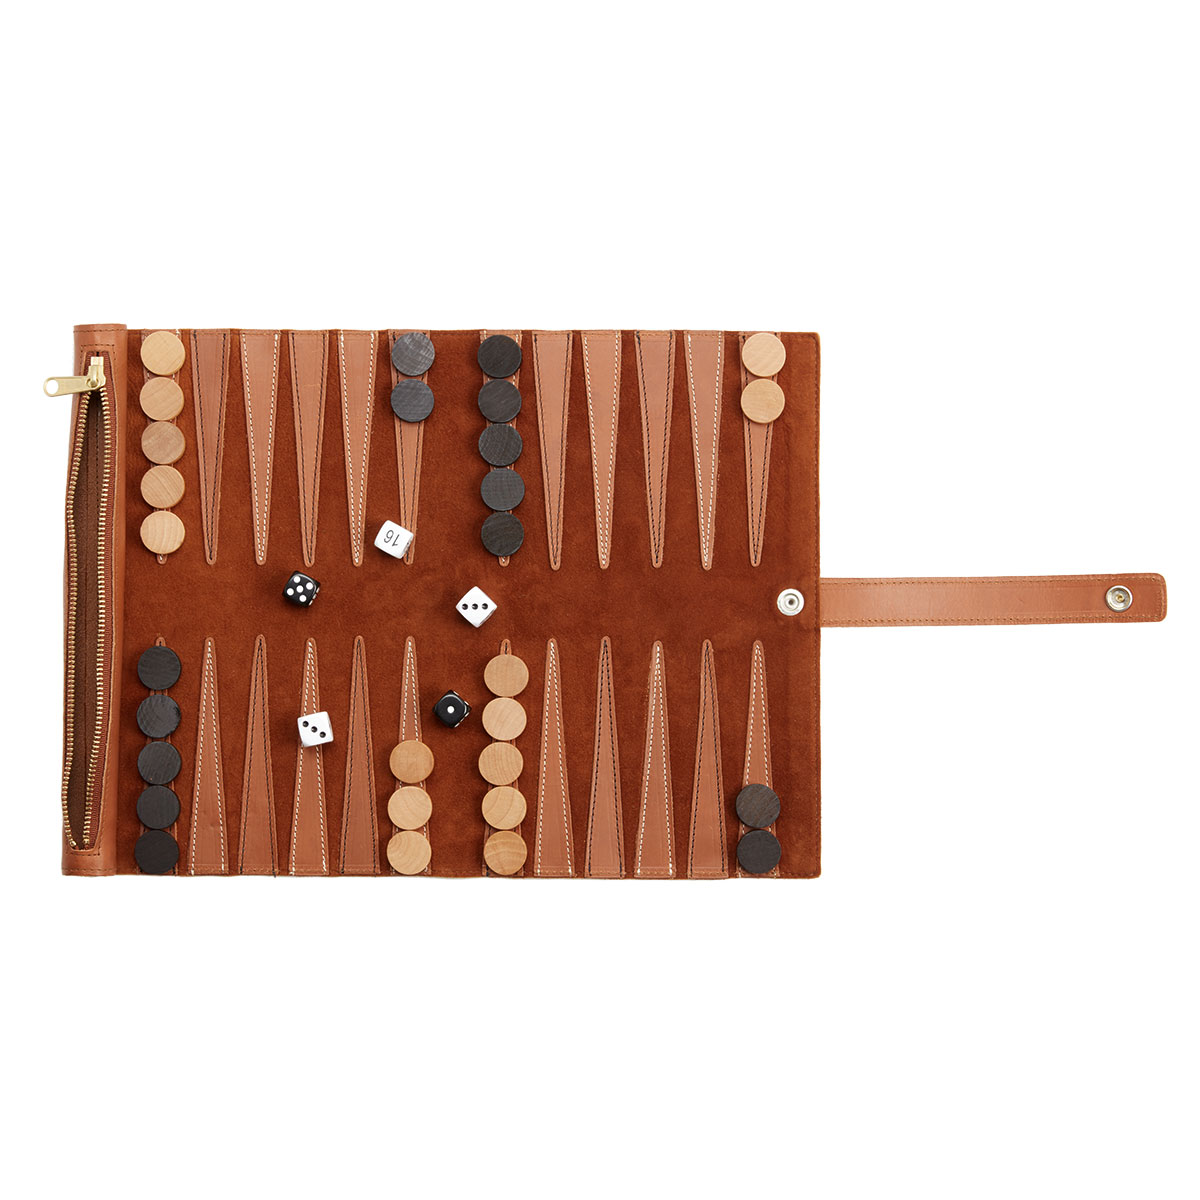 Best Made co. x Francis Mallmann Travel Backgammon Set